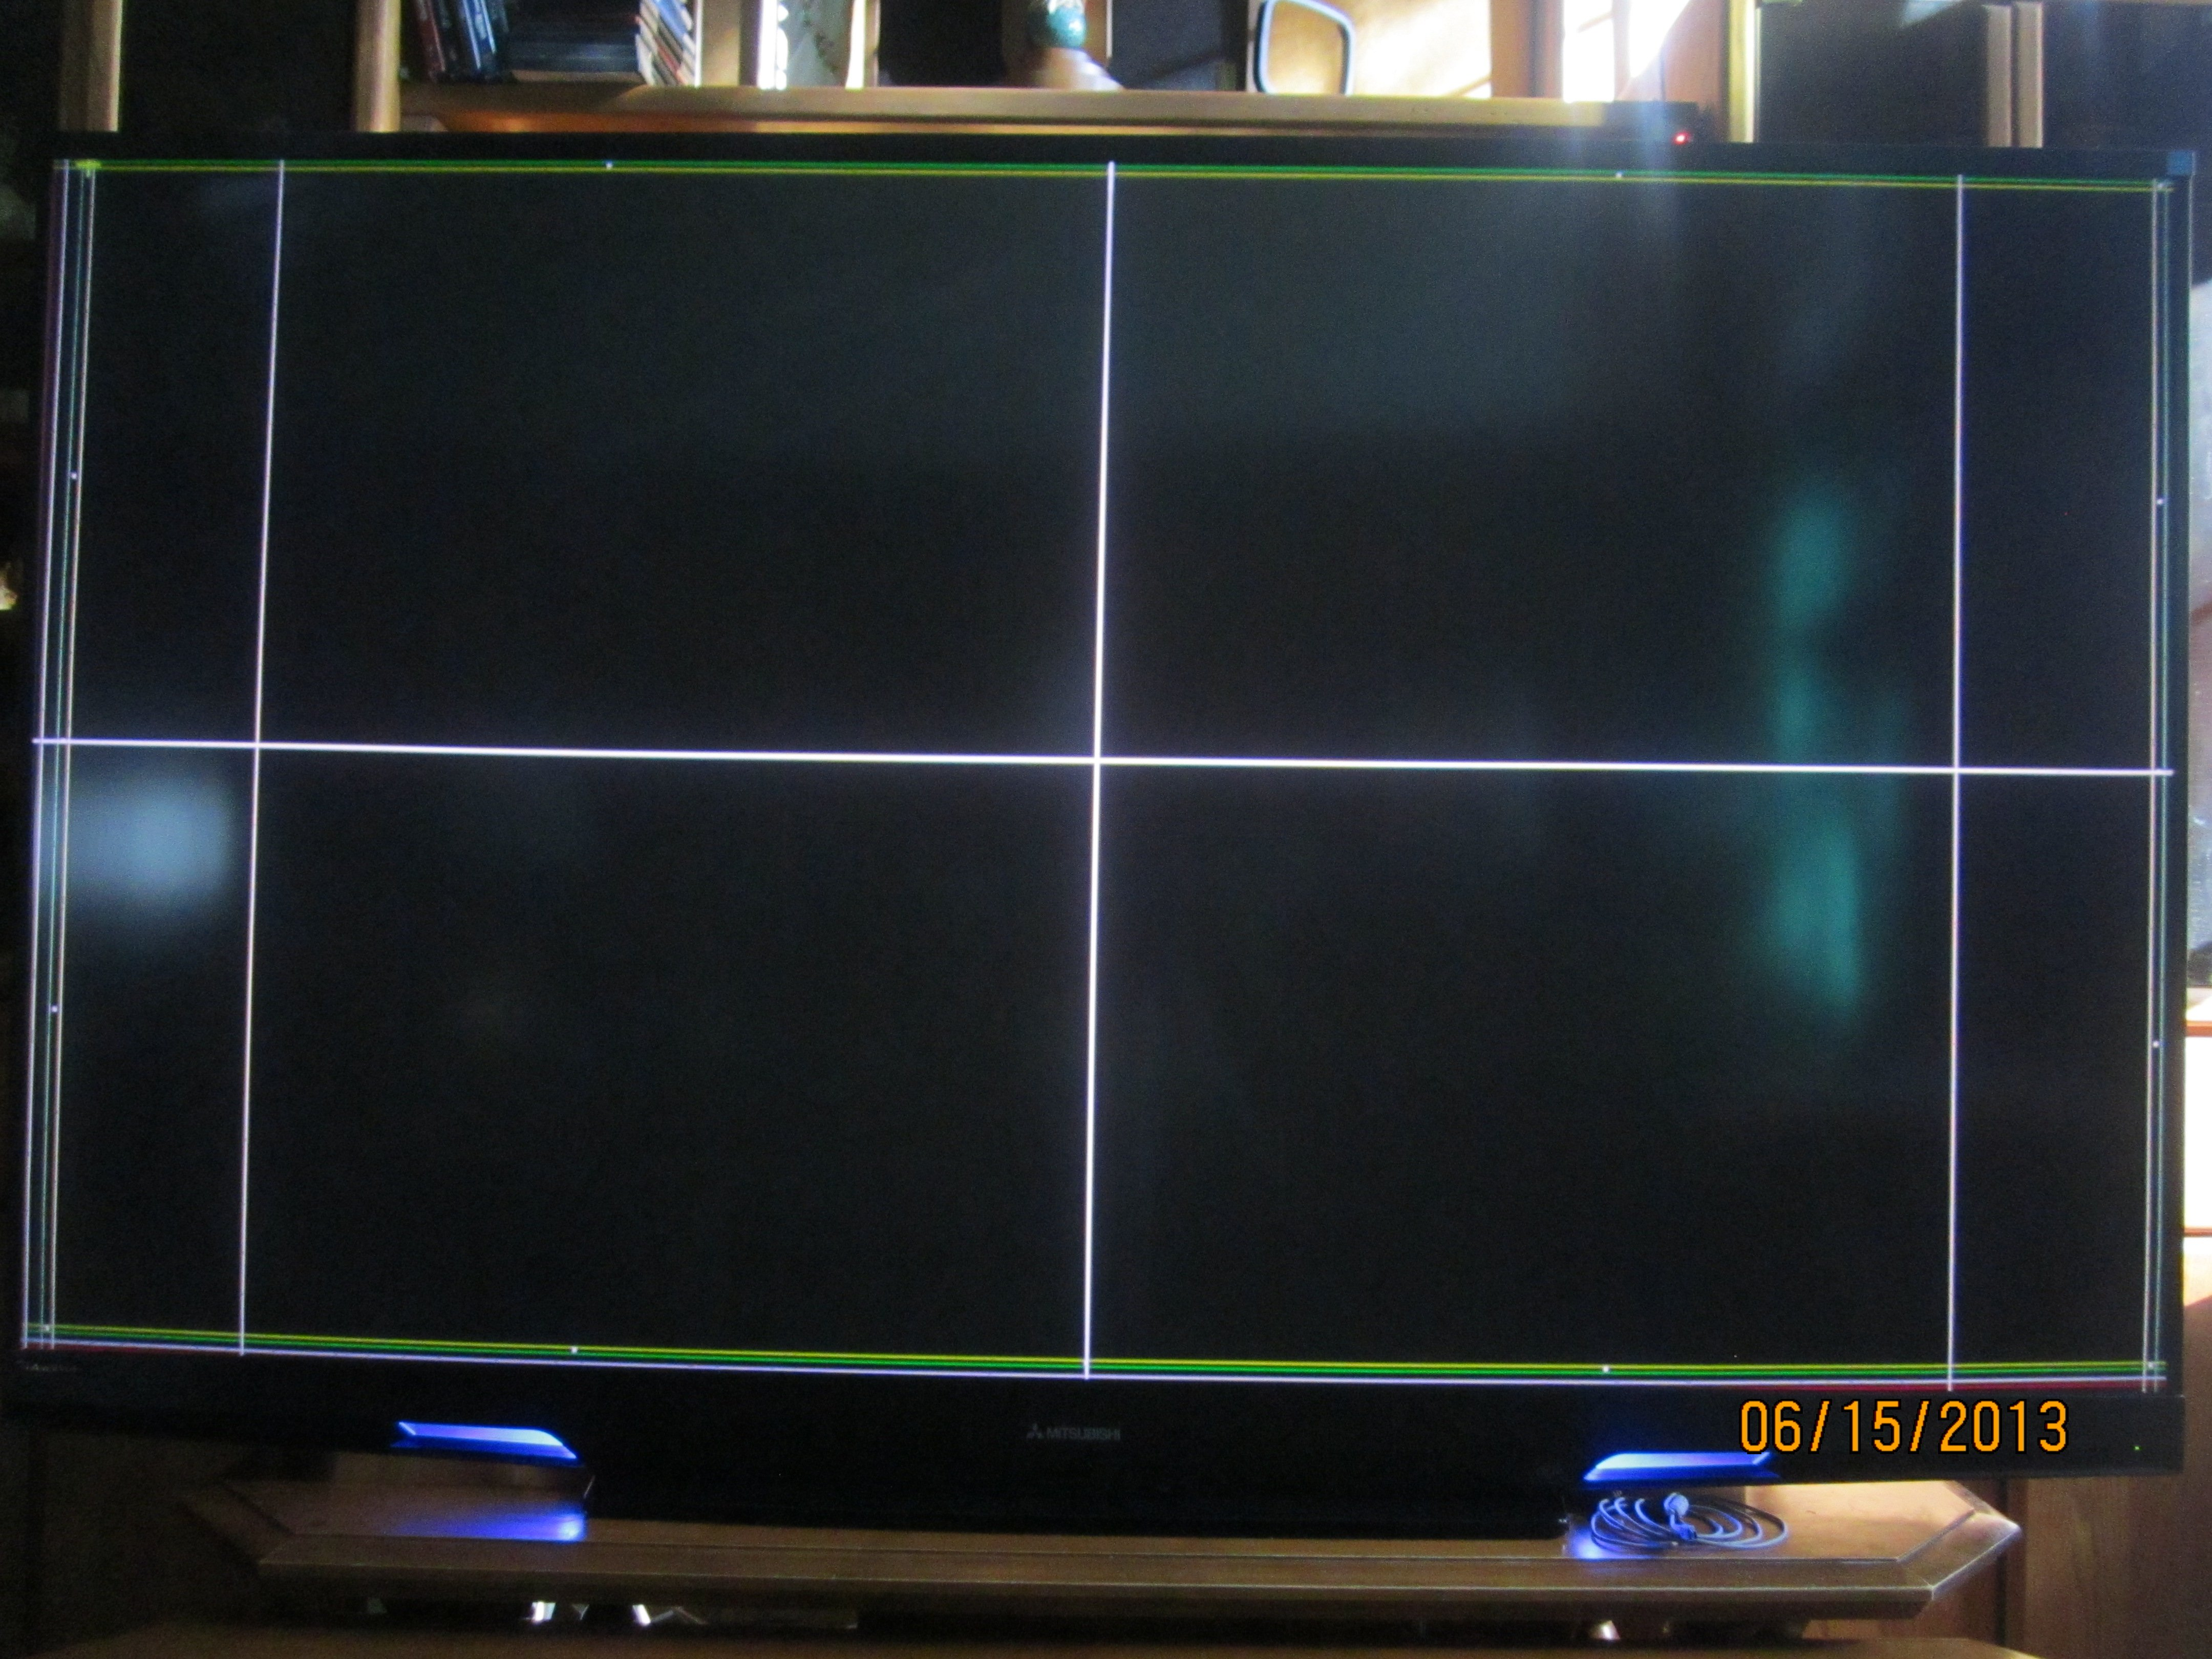 rca mitsubishi tv black lcd guides get led on inch dlp line cheap alibaba shopping com find deals quotations at